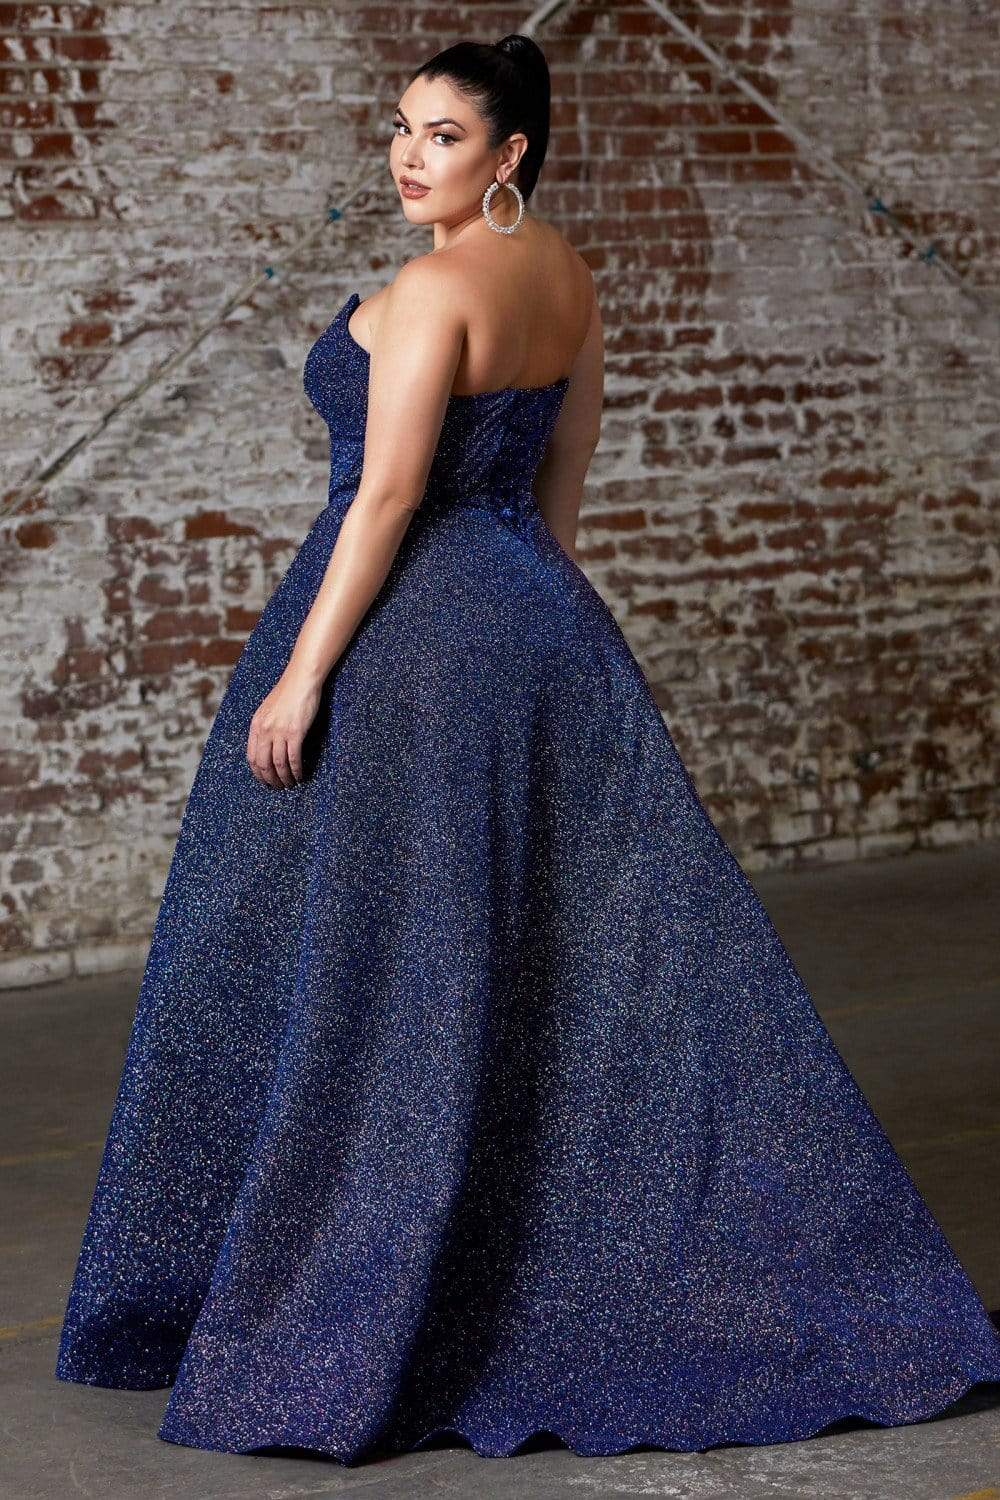 Cinderella Divine - CB045C Strapless Neck High Slit Glitter Ballgown Evening Dresses 16 / Royal